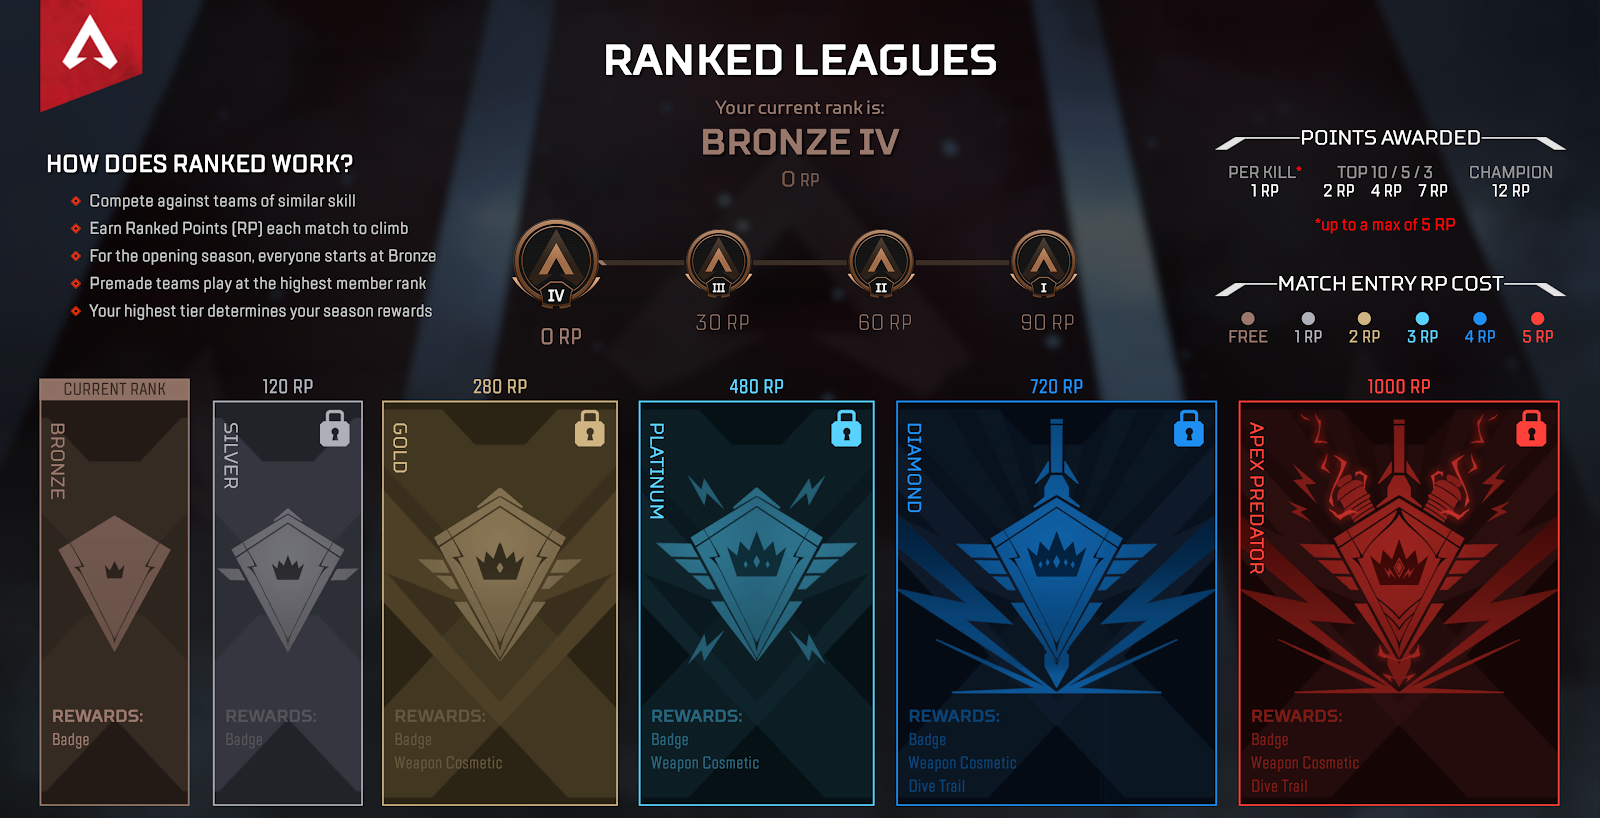 How does Ranked Mode work in Apex Legends